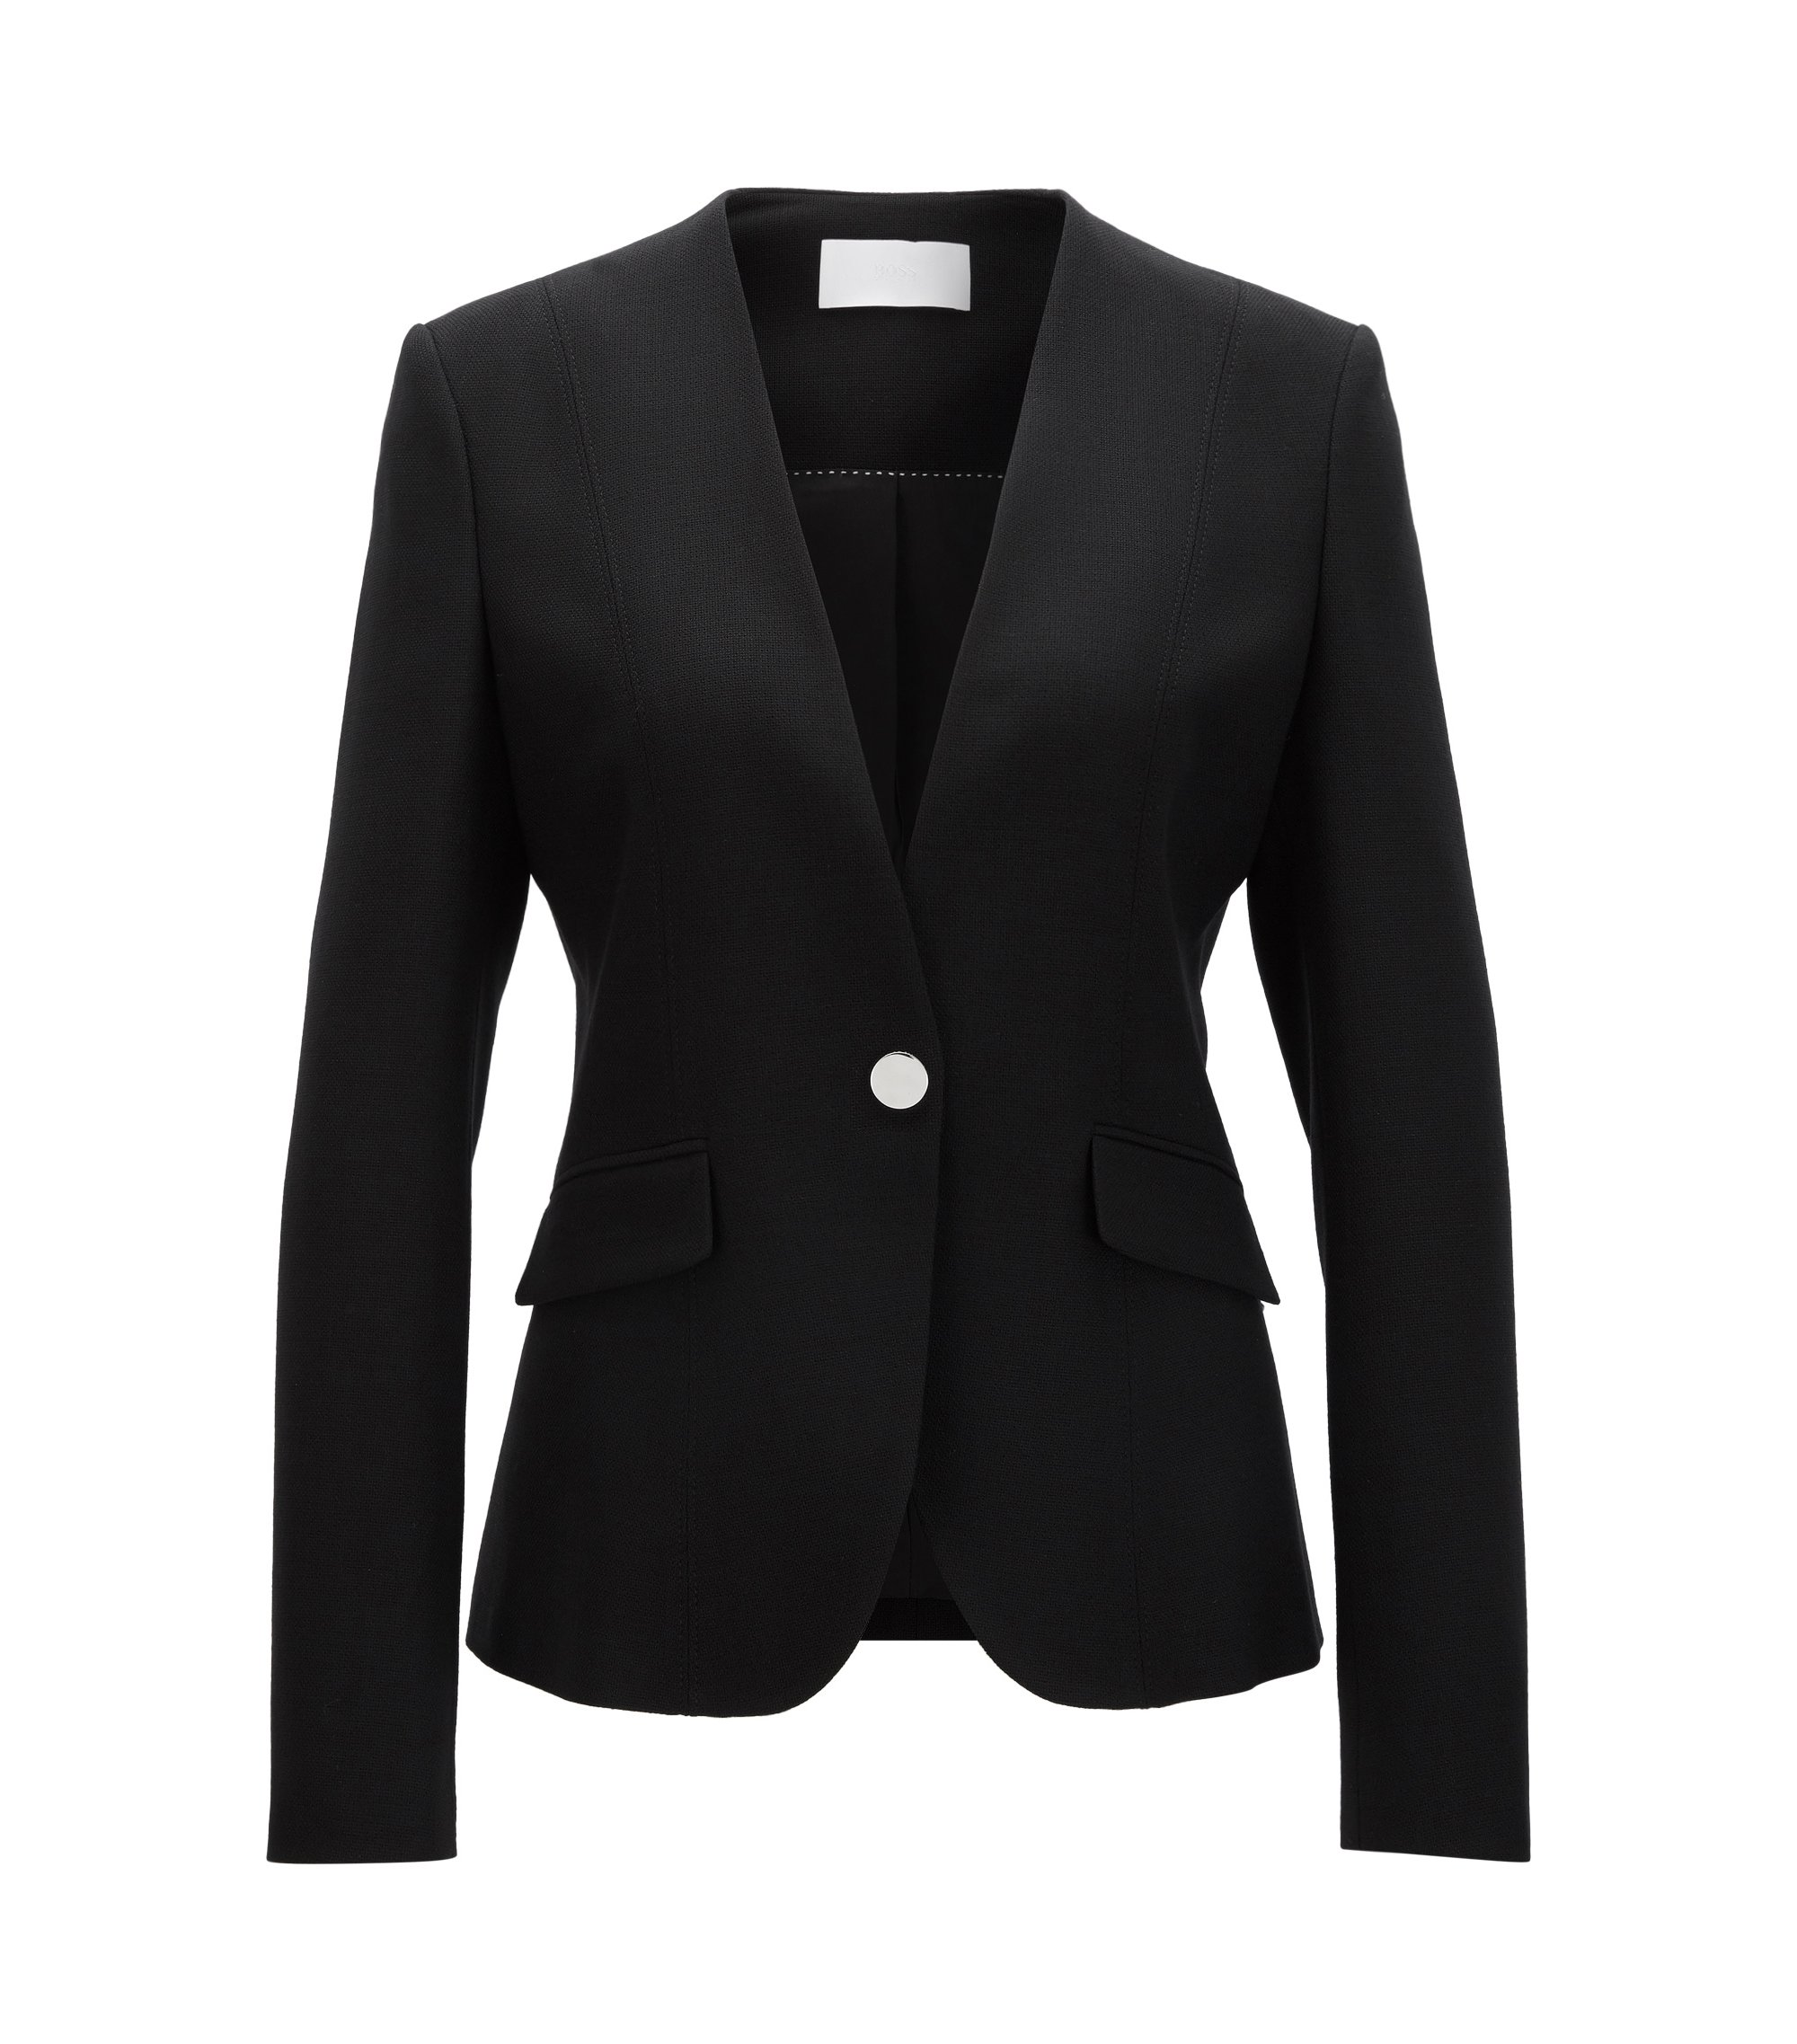 Veste Regular Fit en laine vierge stretch, Noir